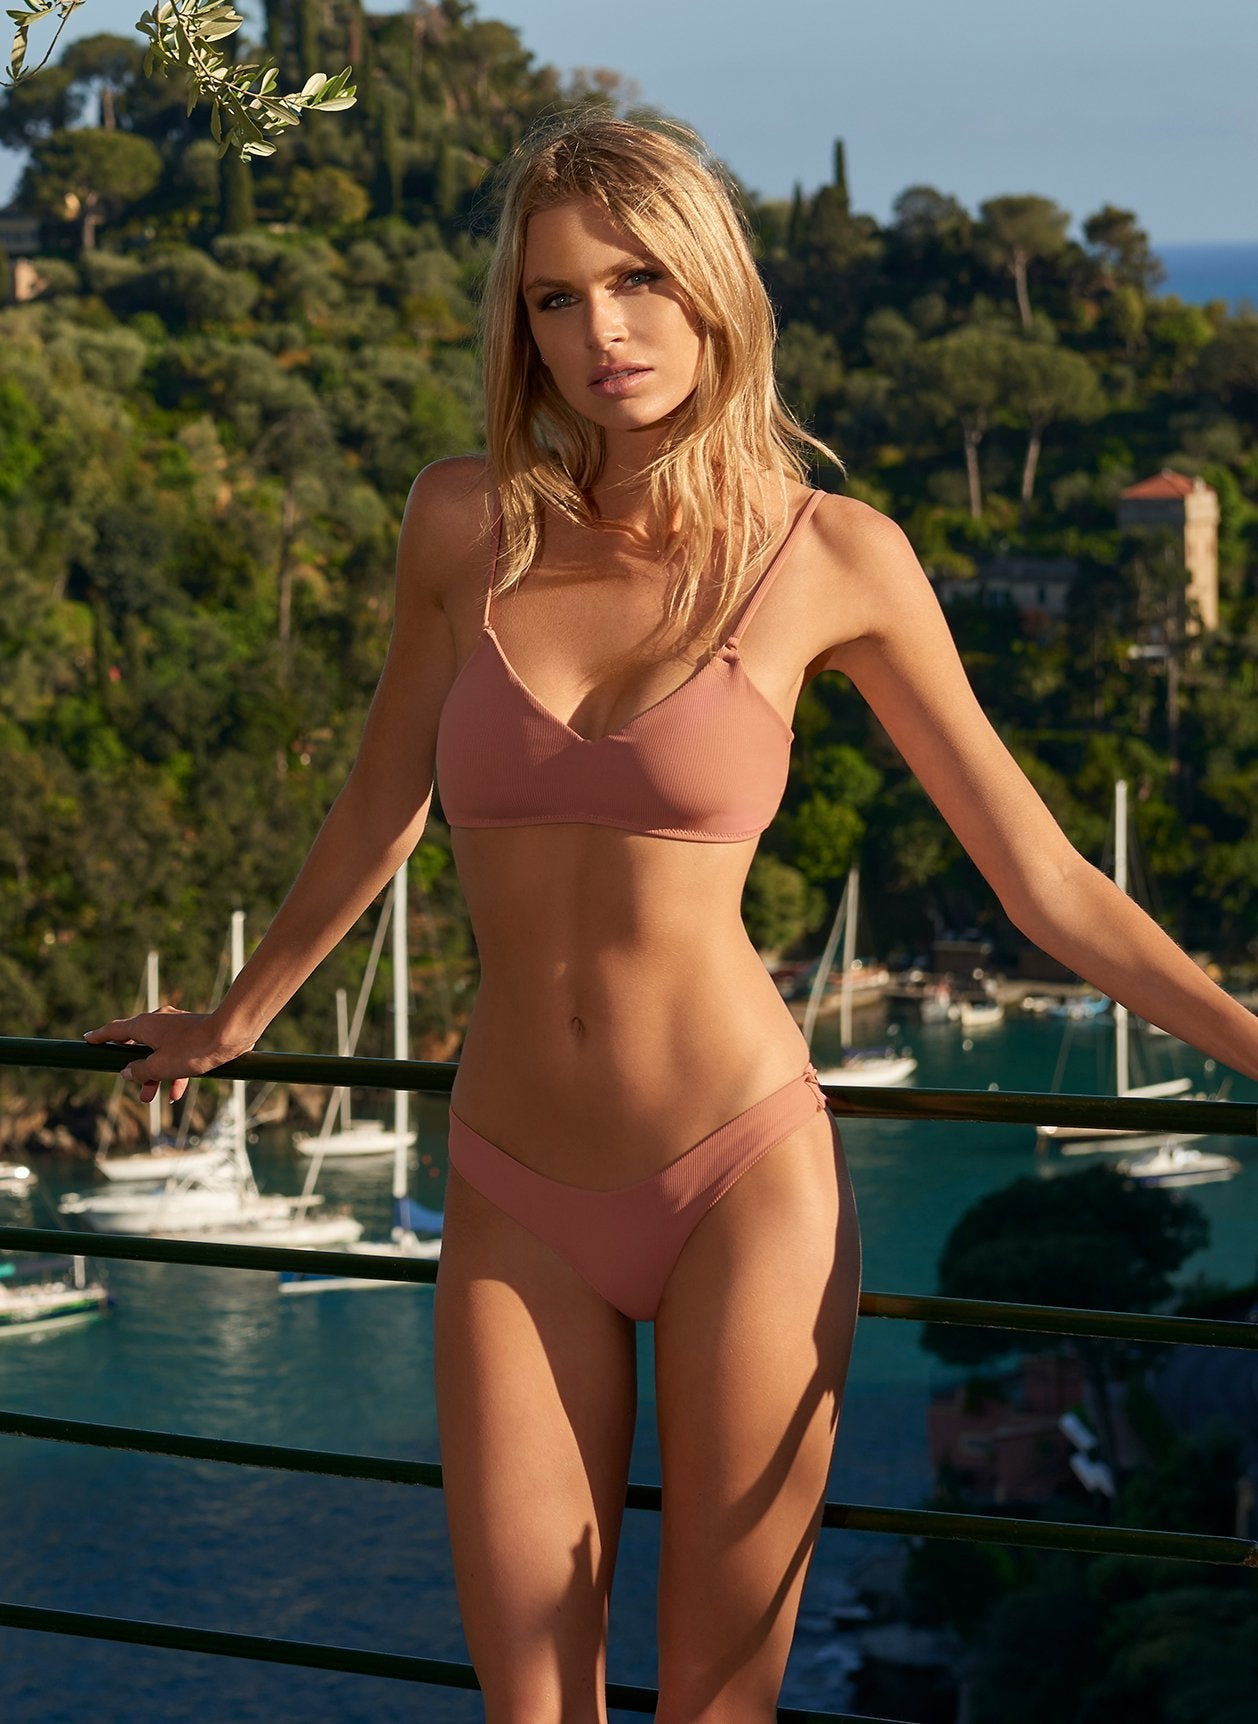 vienna dusty rose ribbed bikini